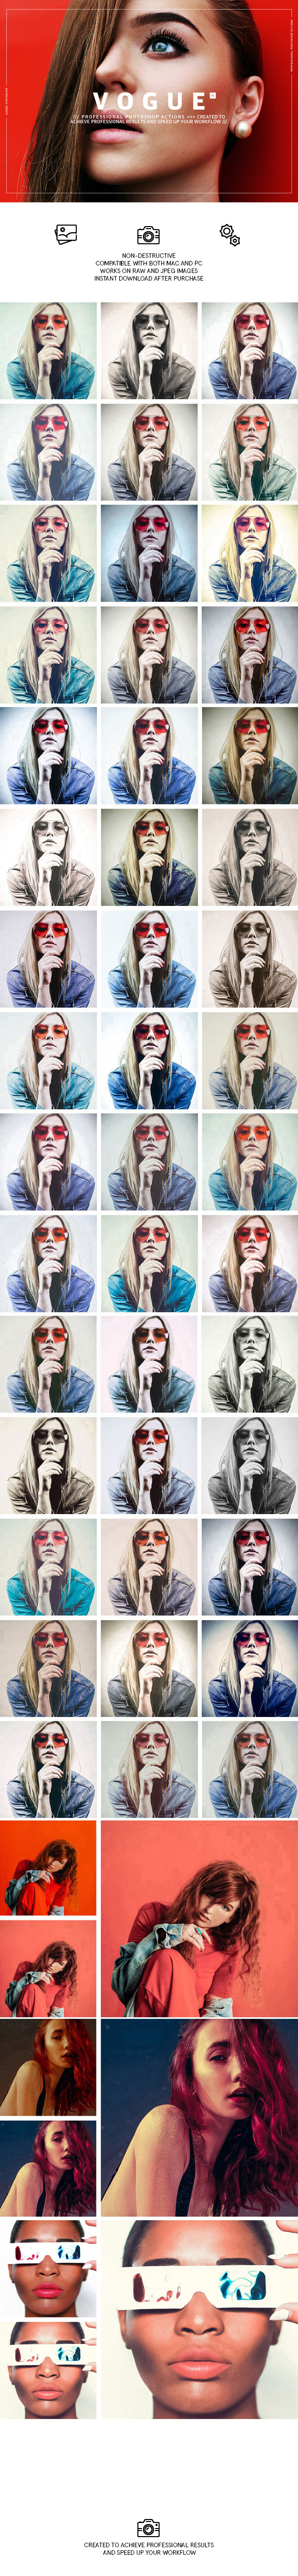 Vogue Fashion Photoshop Actions - Photo Effects Actions